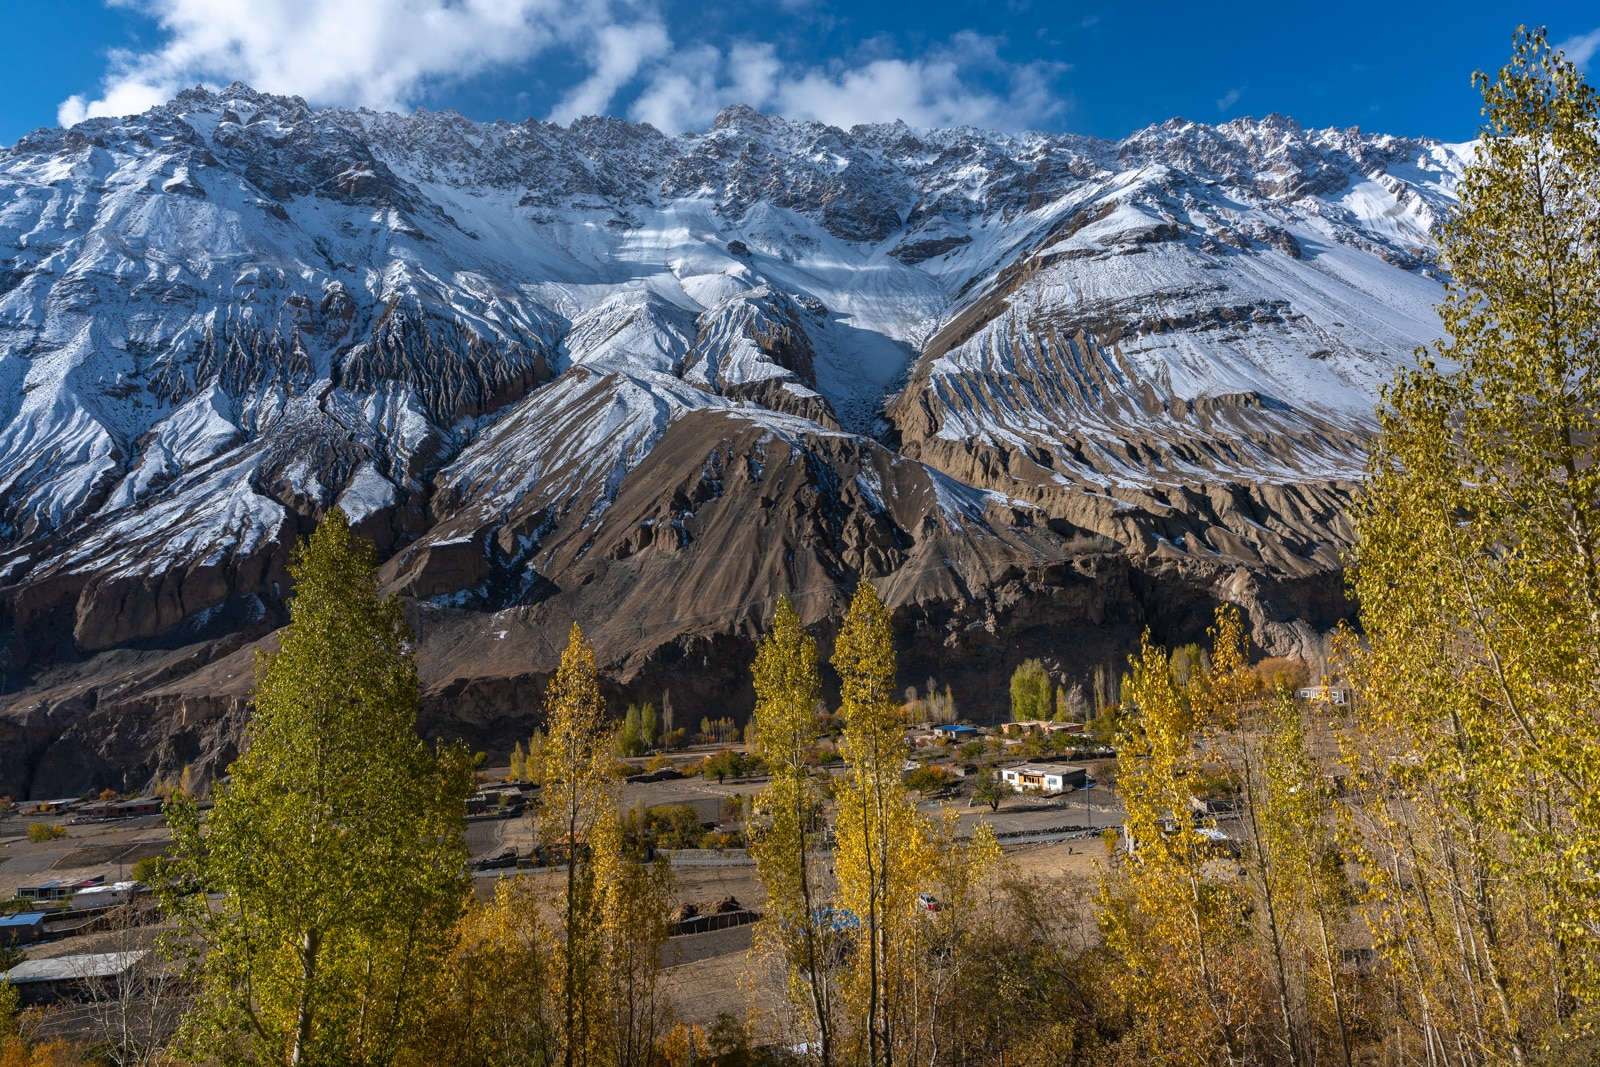 Autumn colors and snowy mountains in Misgar Valley, Pakistan